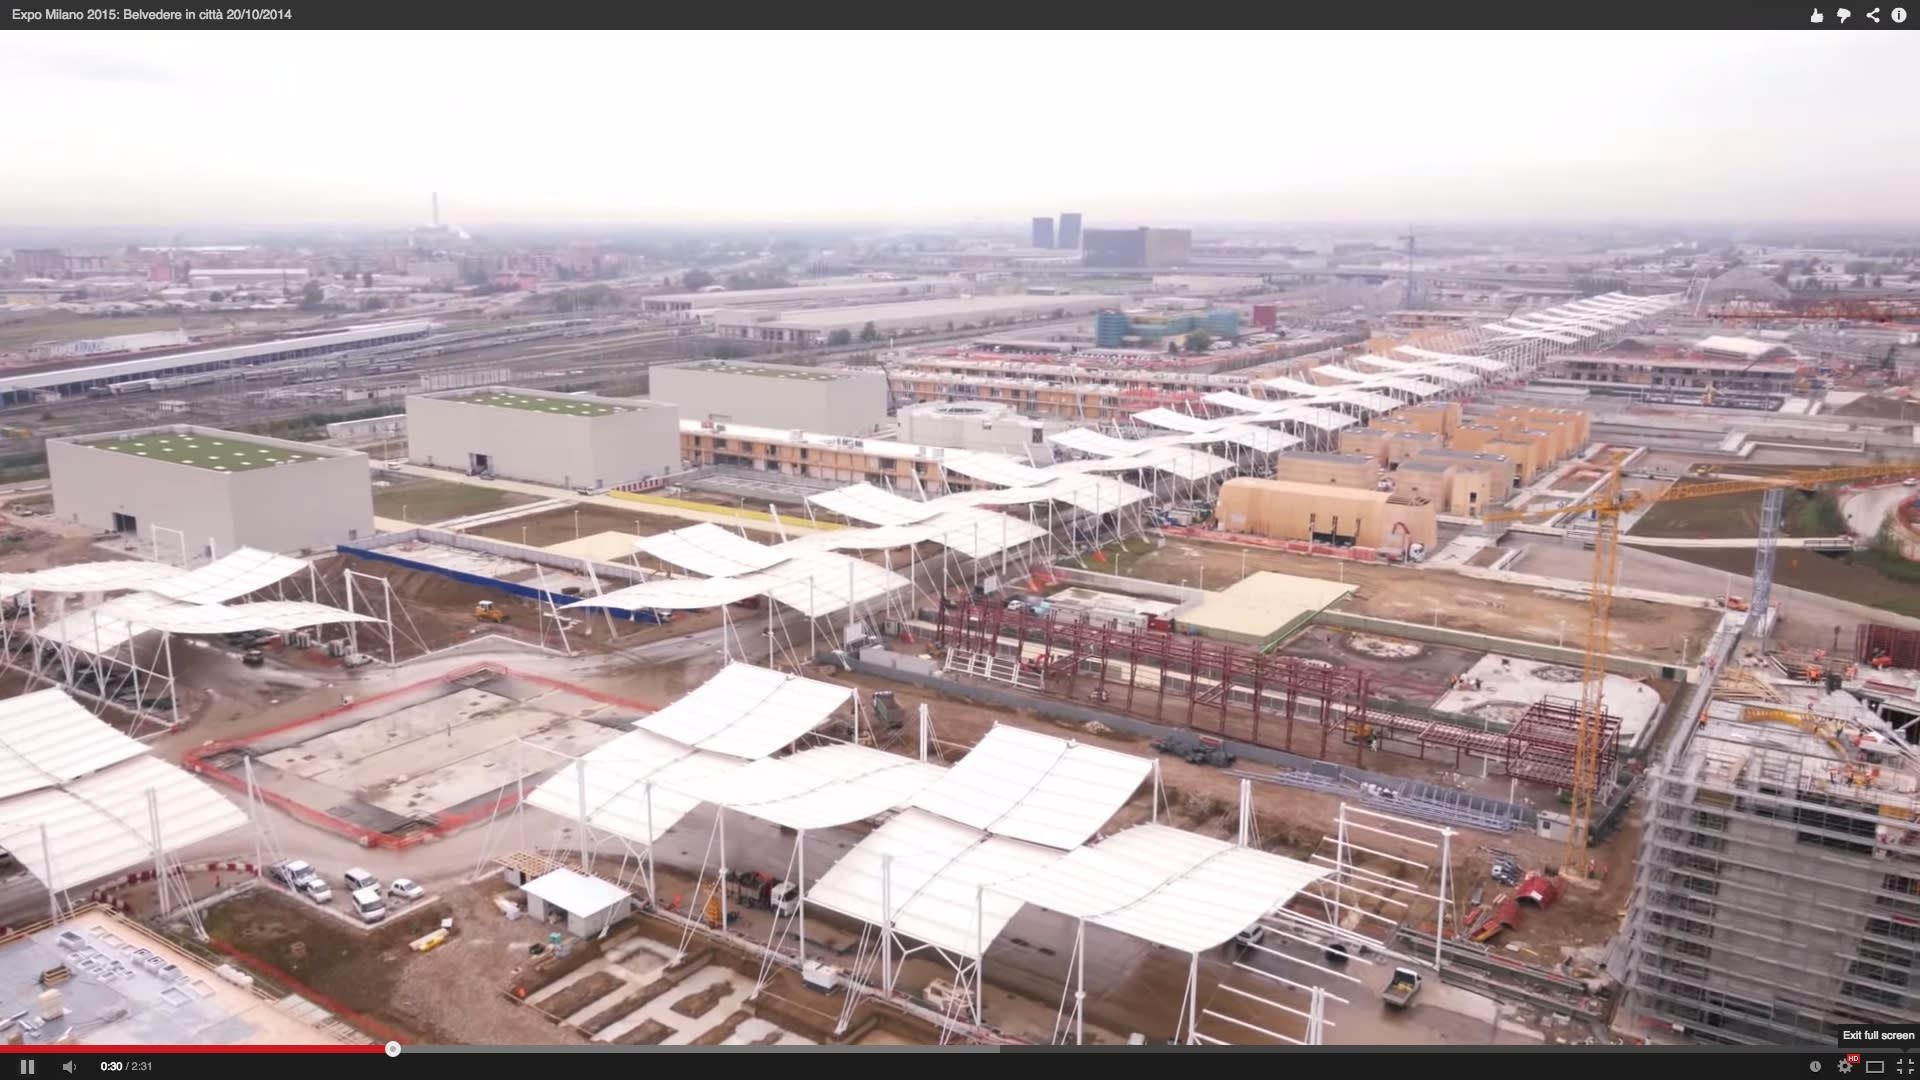 Milan Expo 2015 construction filmed by drones